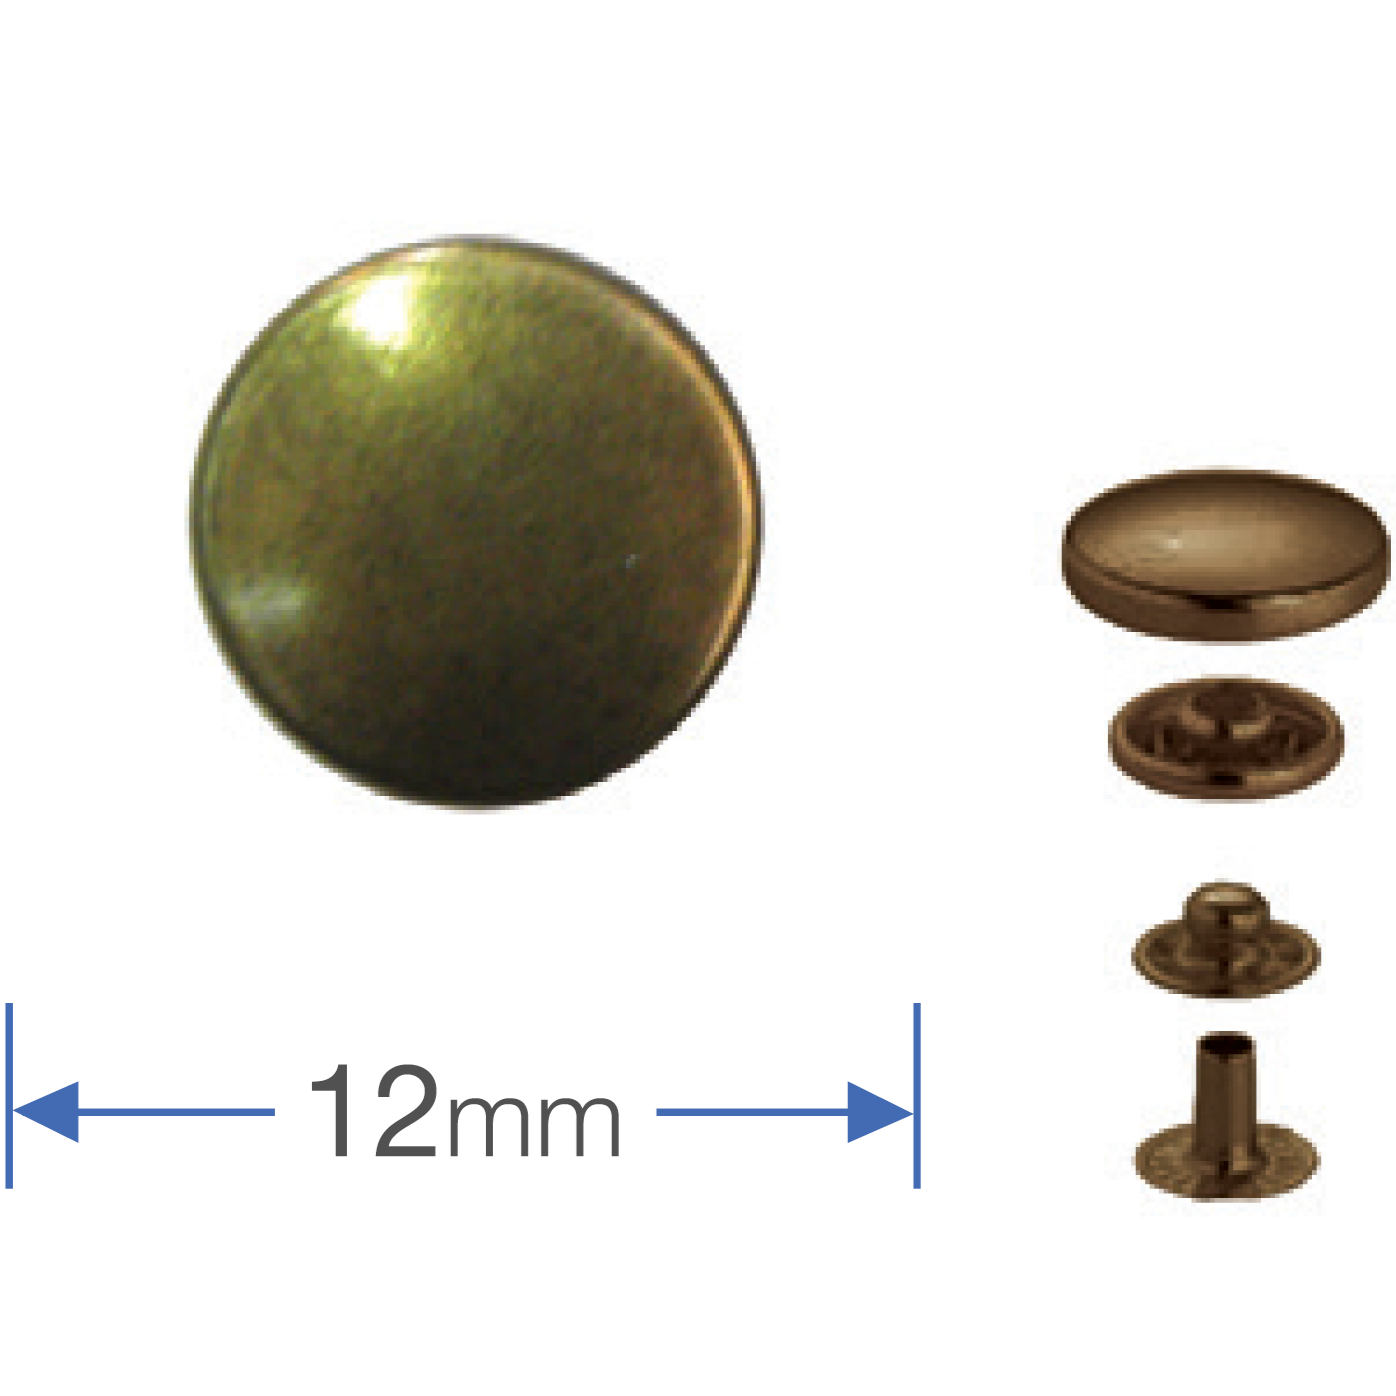 Press Studs (Non-Sew) - Antique Brass 12mm: Pack of 10